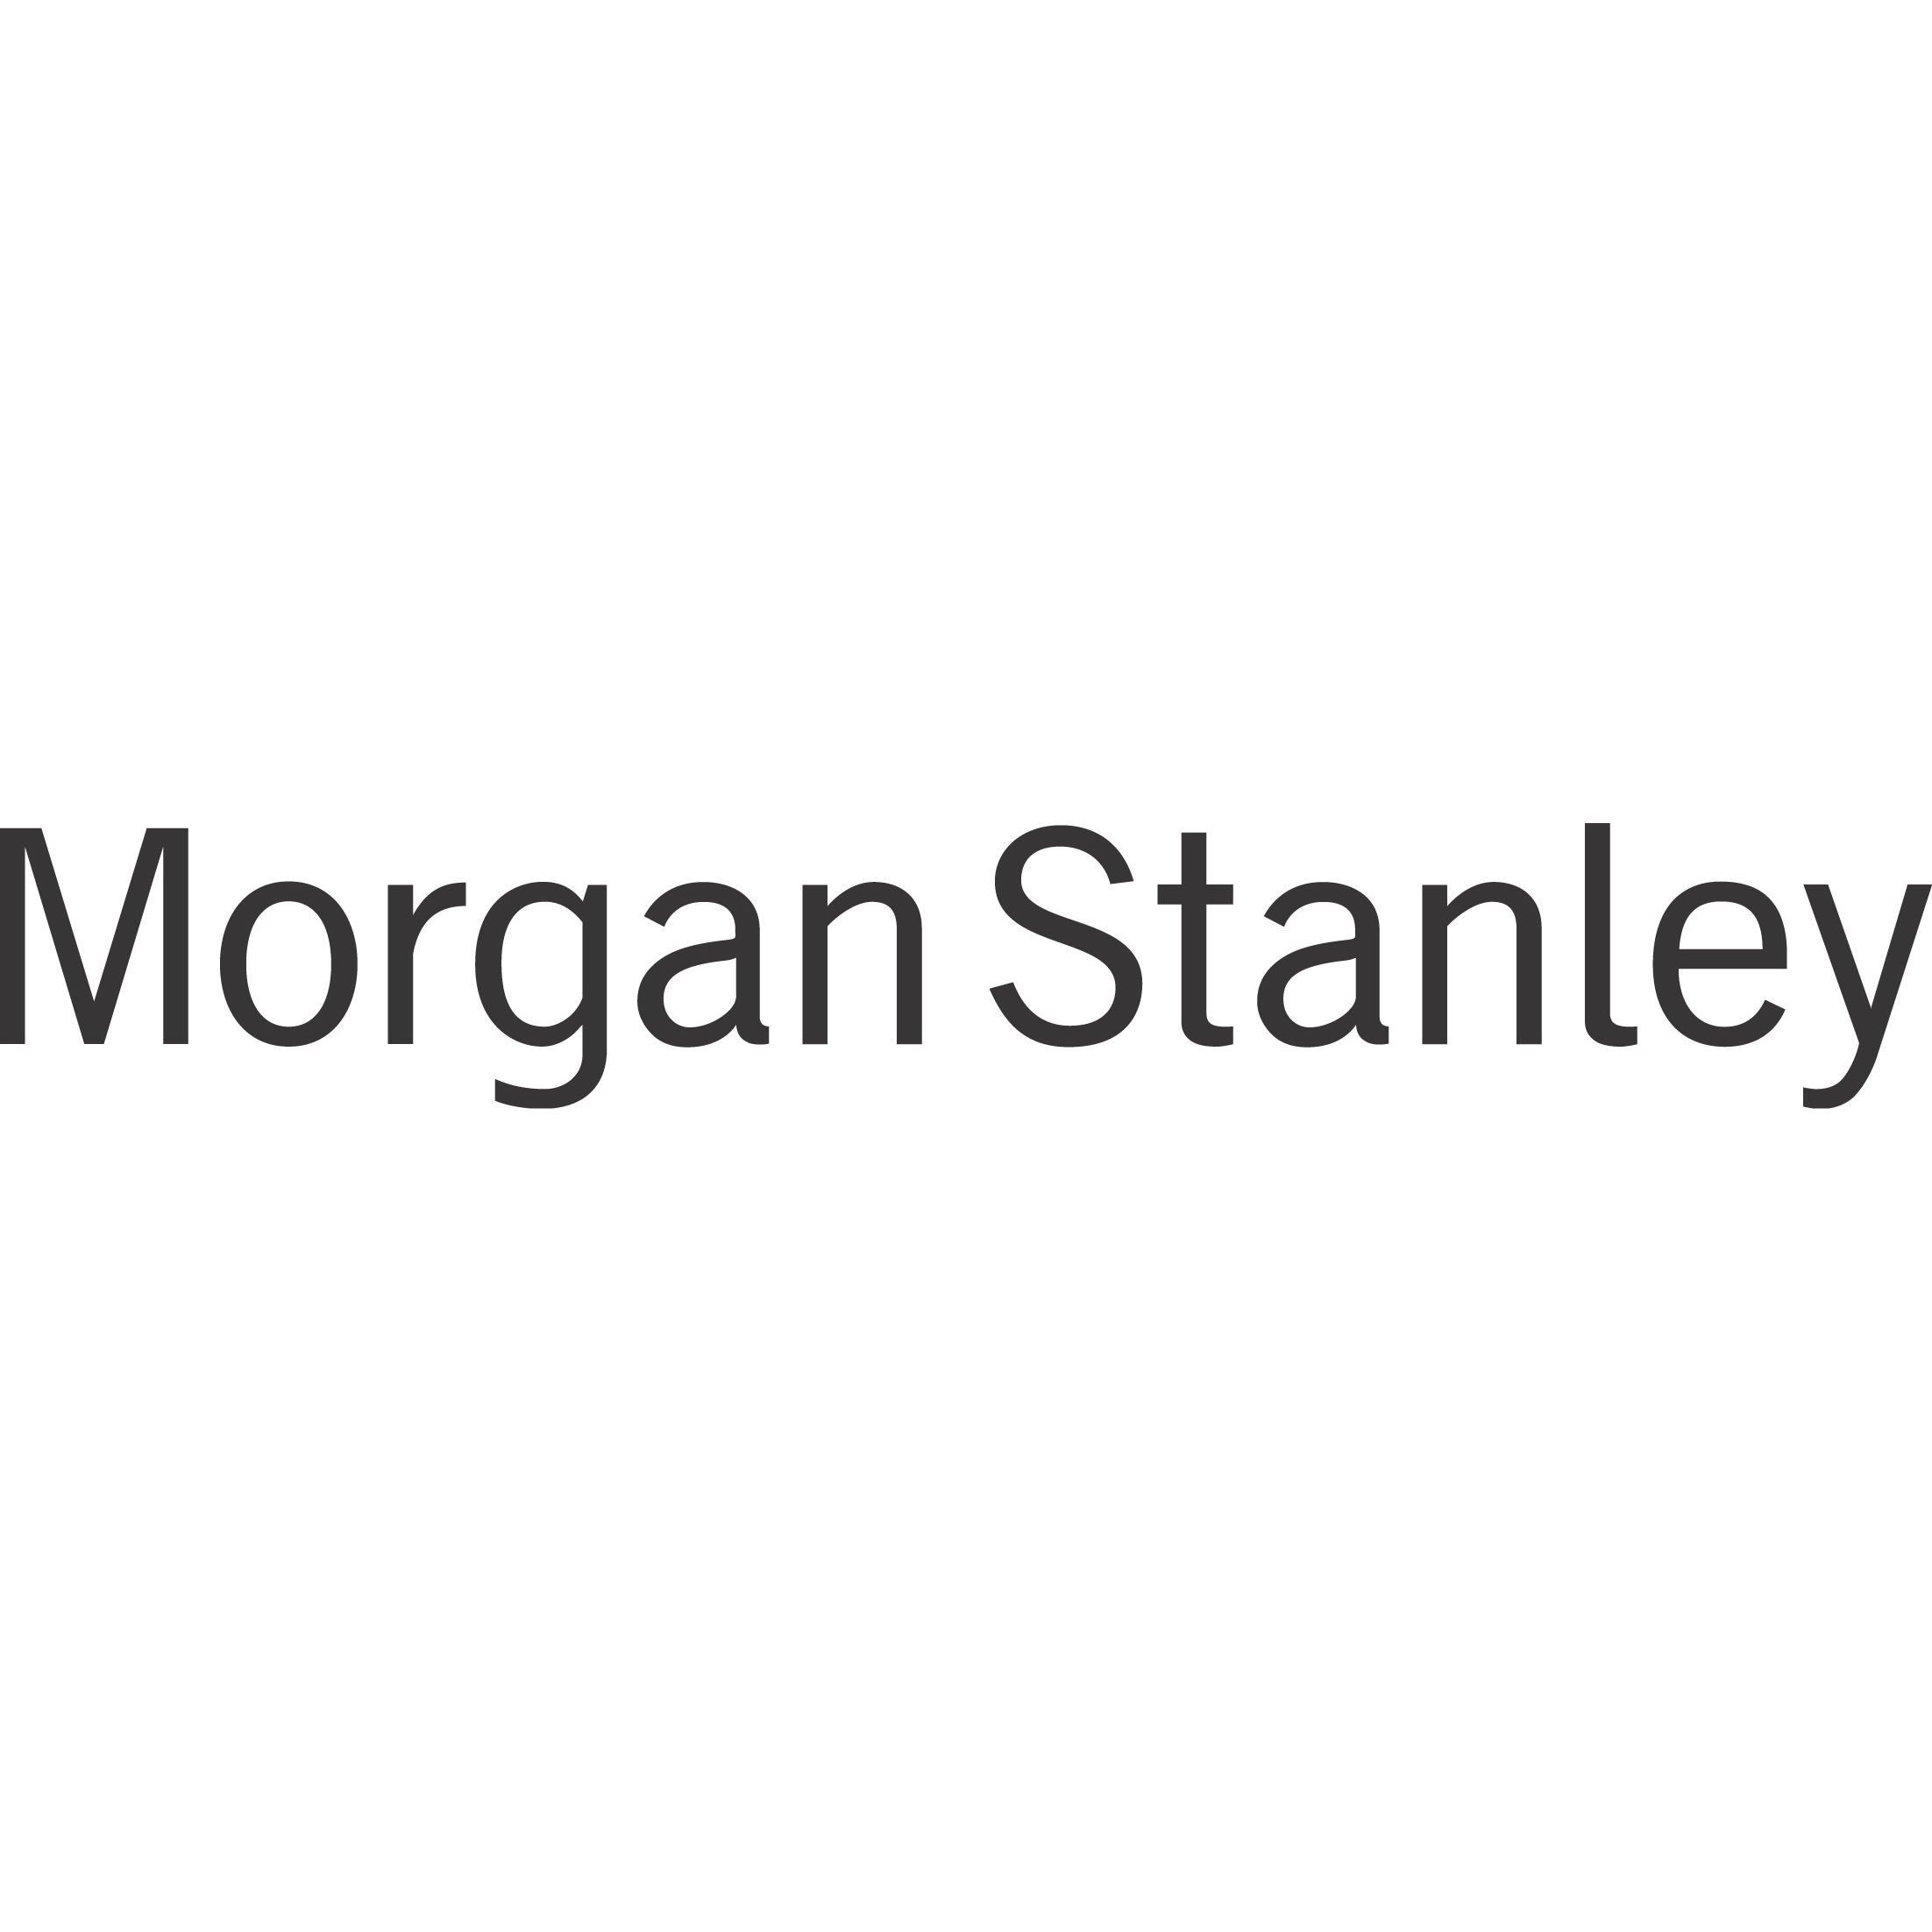 William Gleason - Morgan Stanley